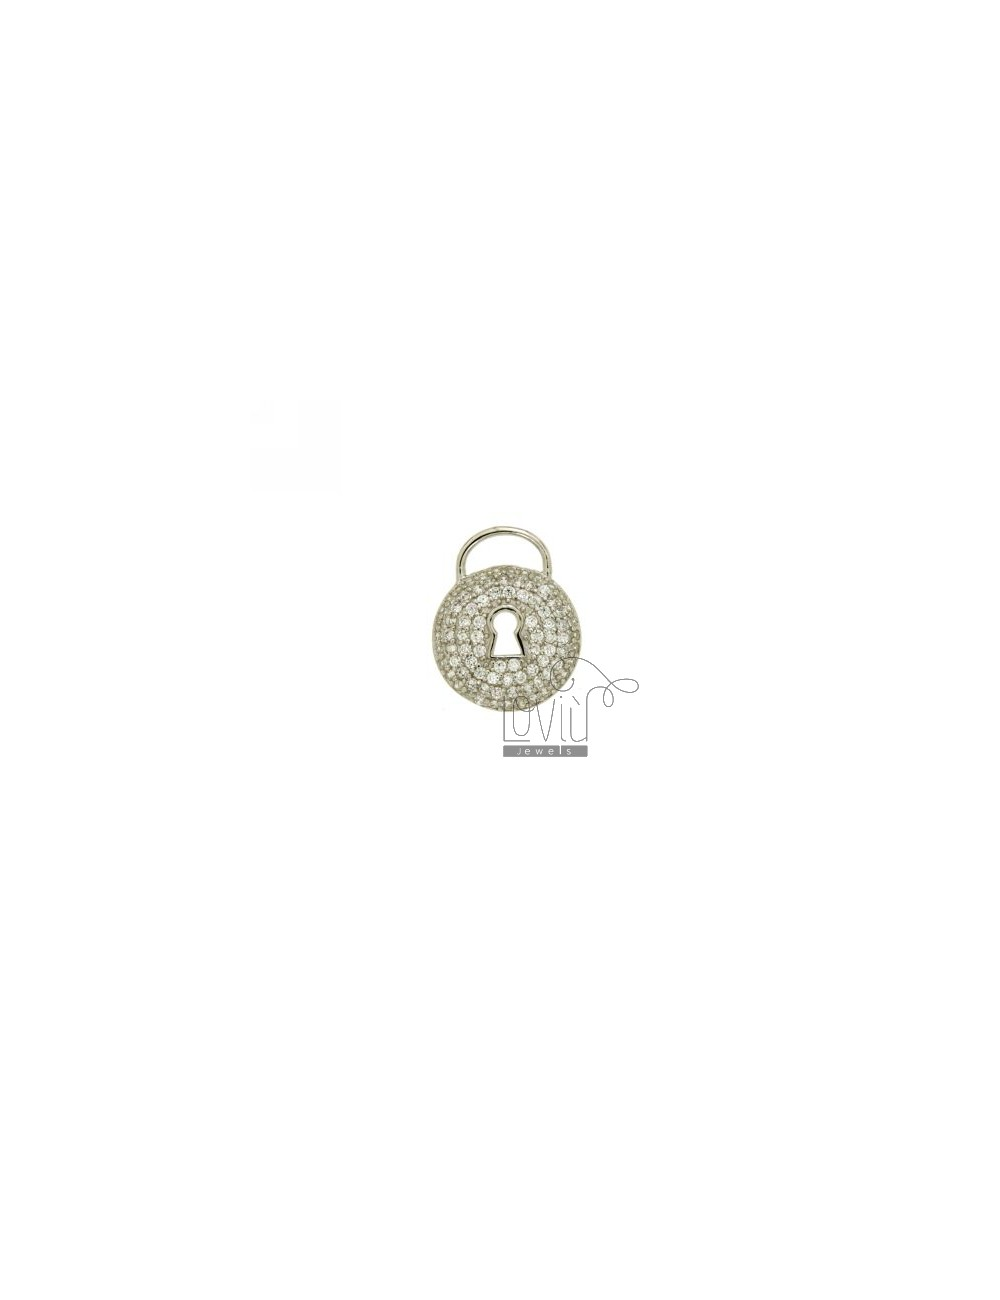 PENDANT CLASP ROUND MM 18X15 IN AG TIT 925 ‰ AND ZIRCONIA